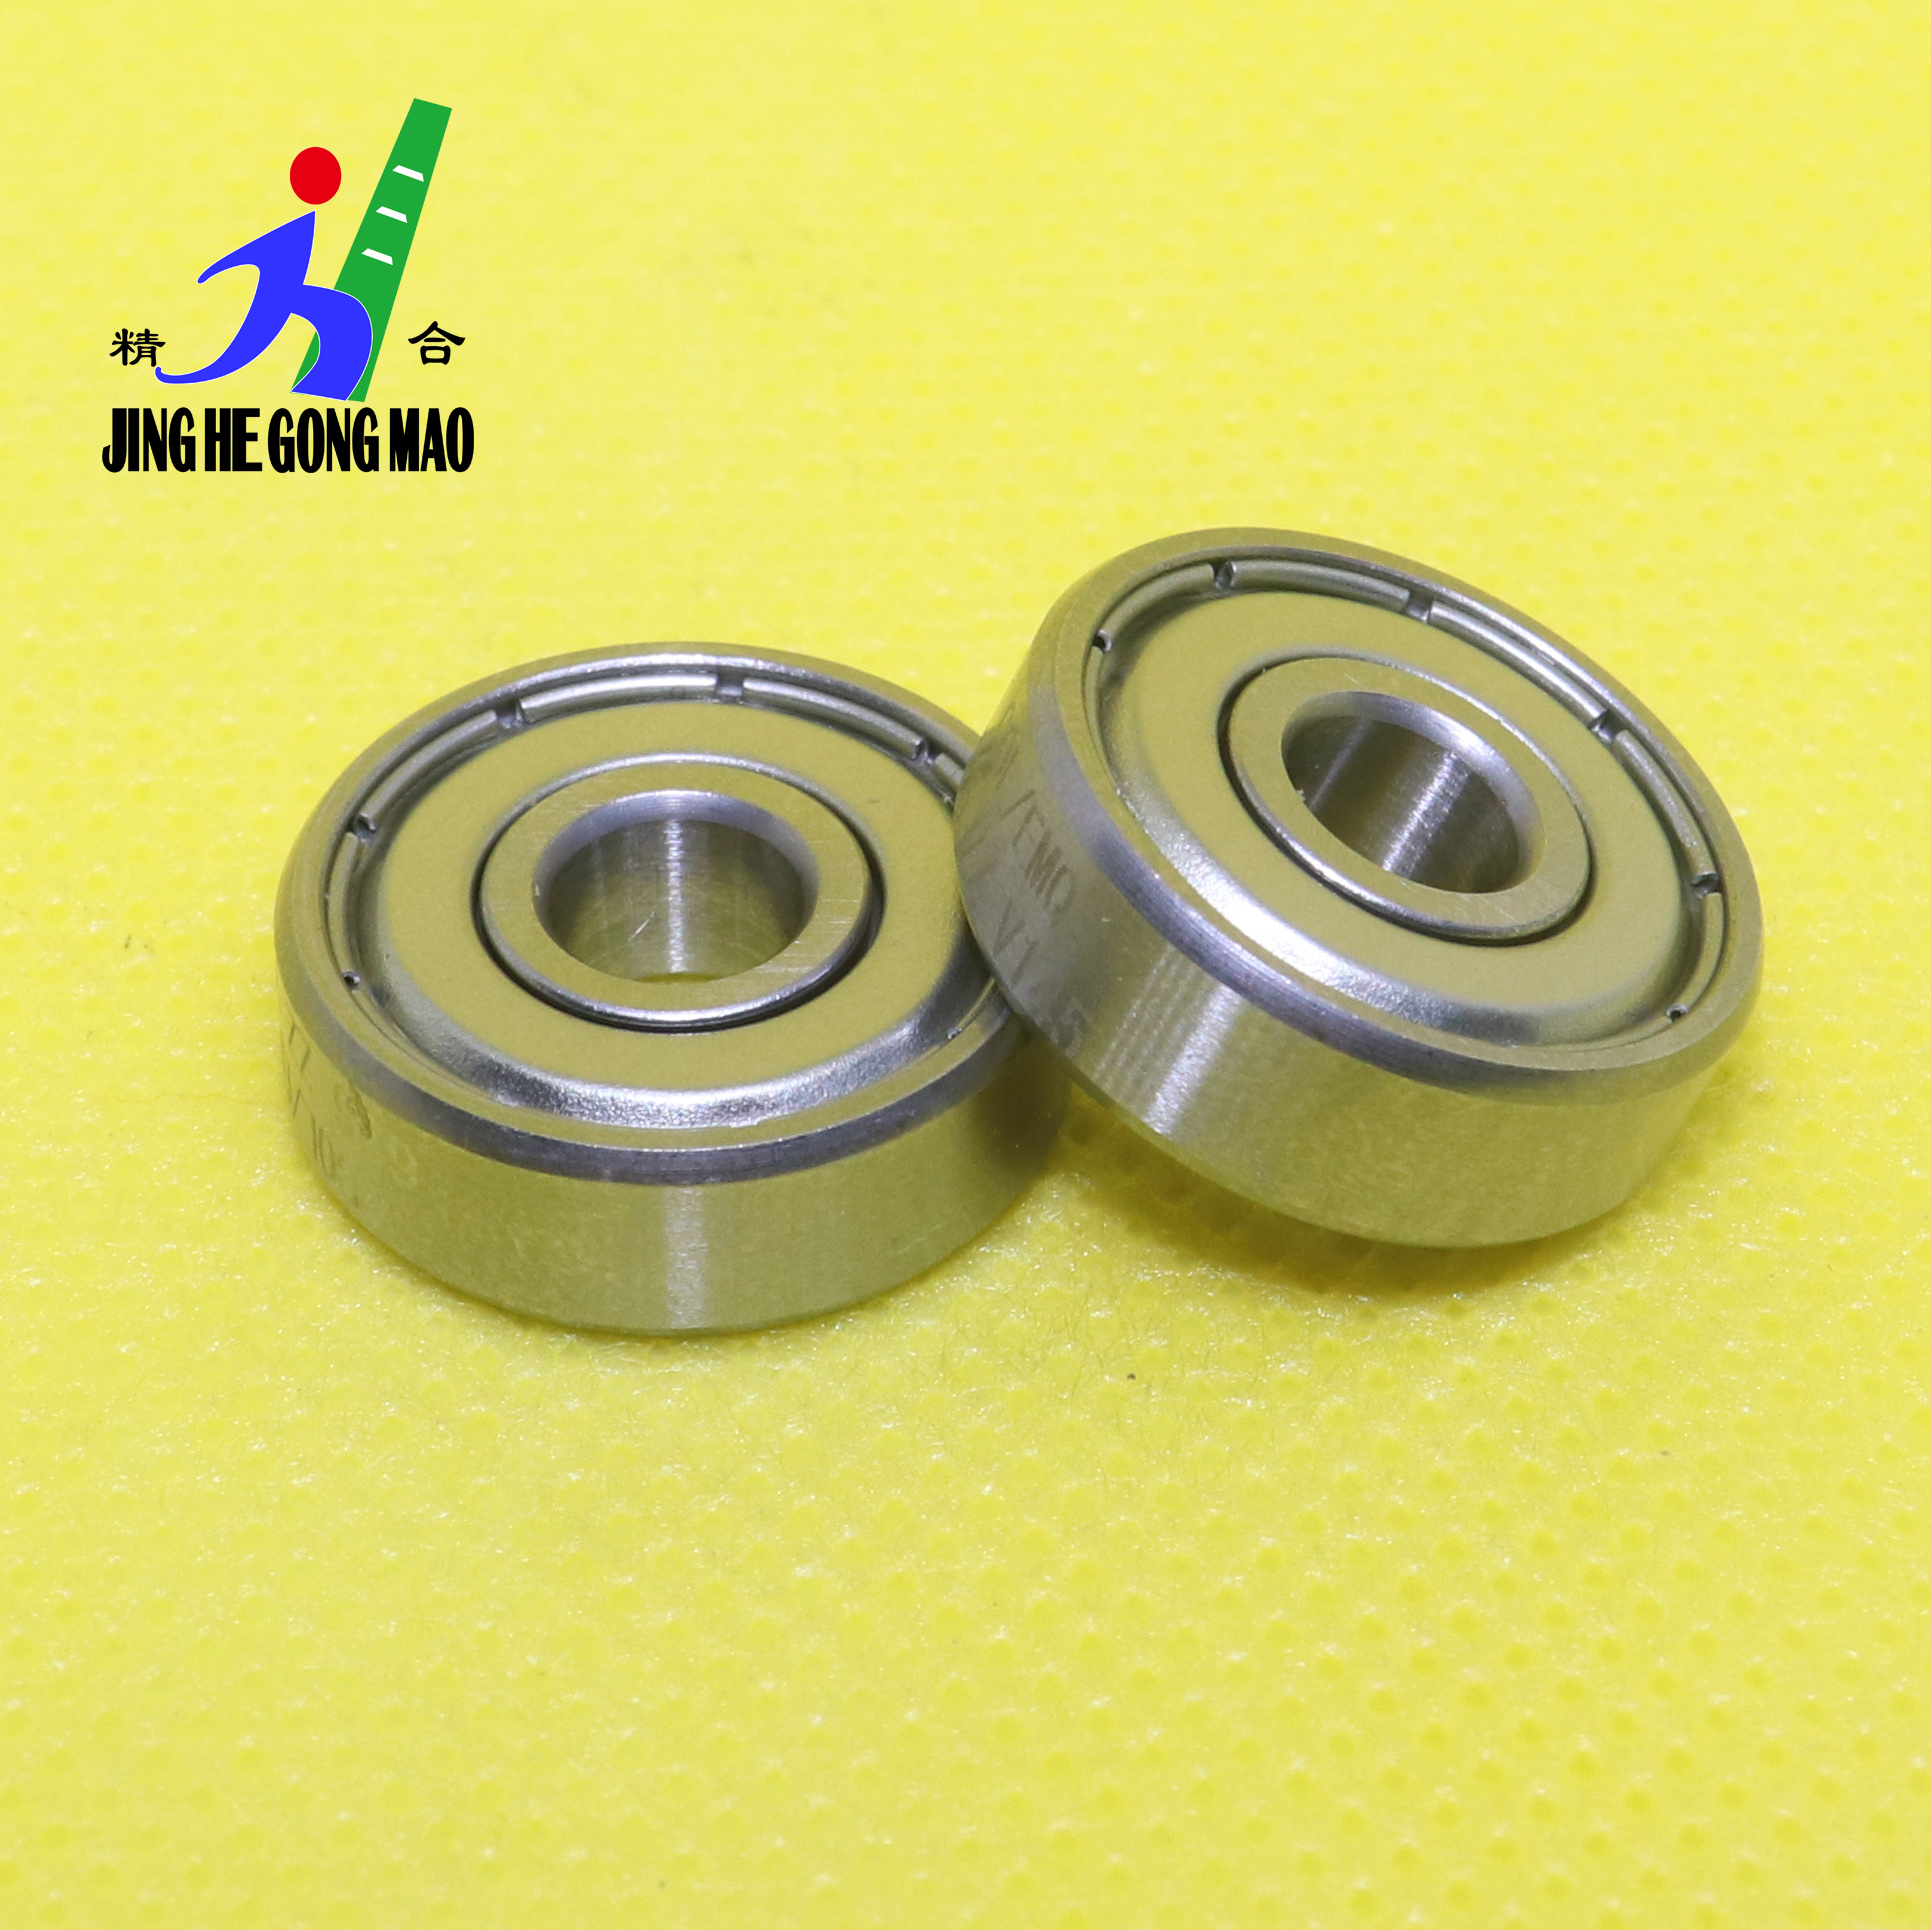 10Pcs/Lot <font><b>625ZZ</b></font> 608ZZ Deep Groove Ball Bearings Miniature Rubber Sealed Metal Shielded image